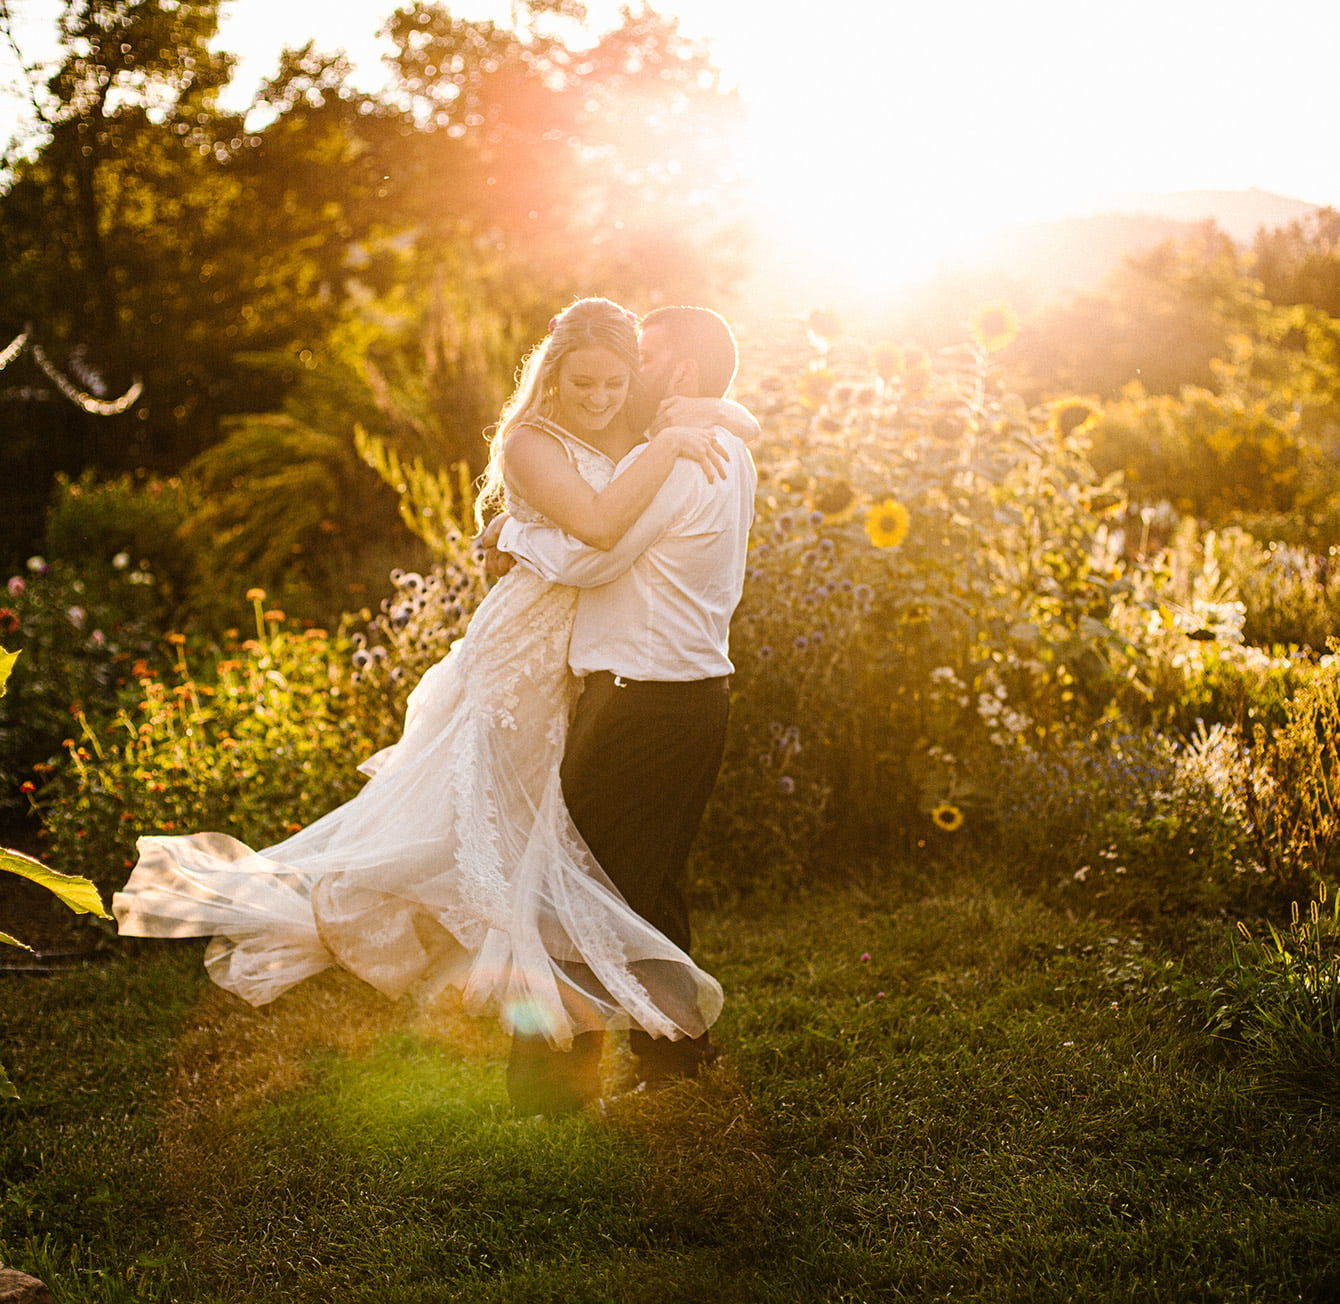 Bride and groom dancing in flowers at sunset